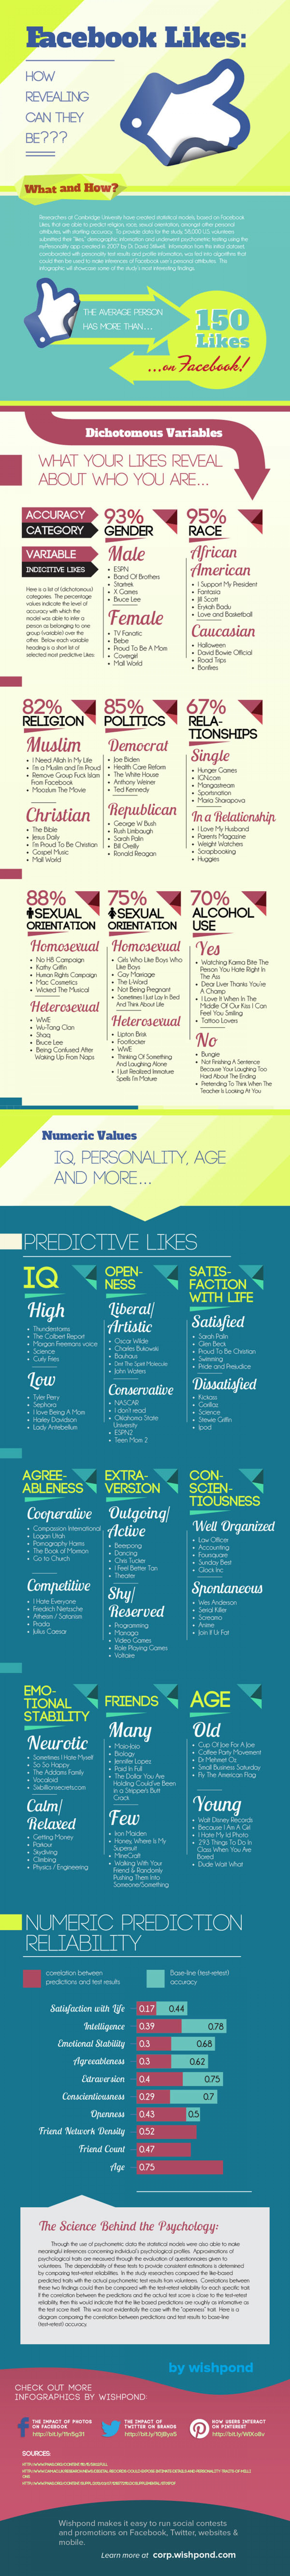 Facebook Likes: How Revealing Can They Be? Infographic